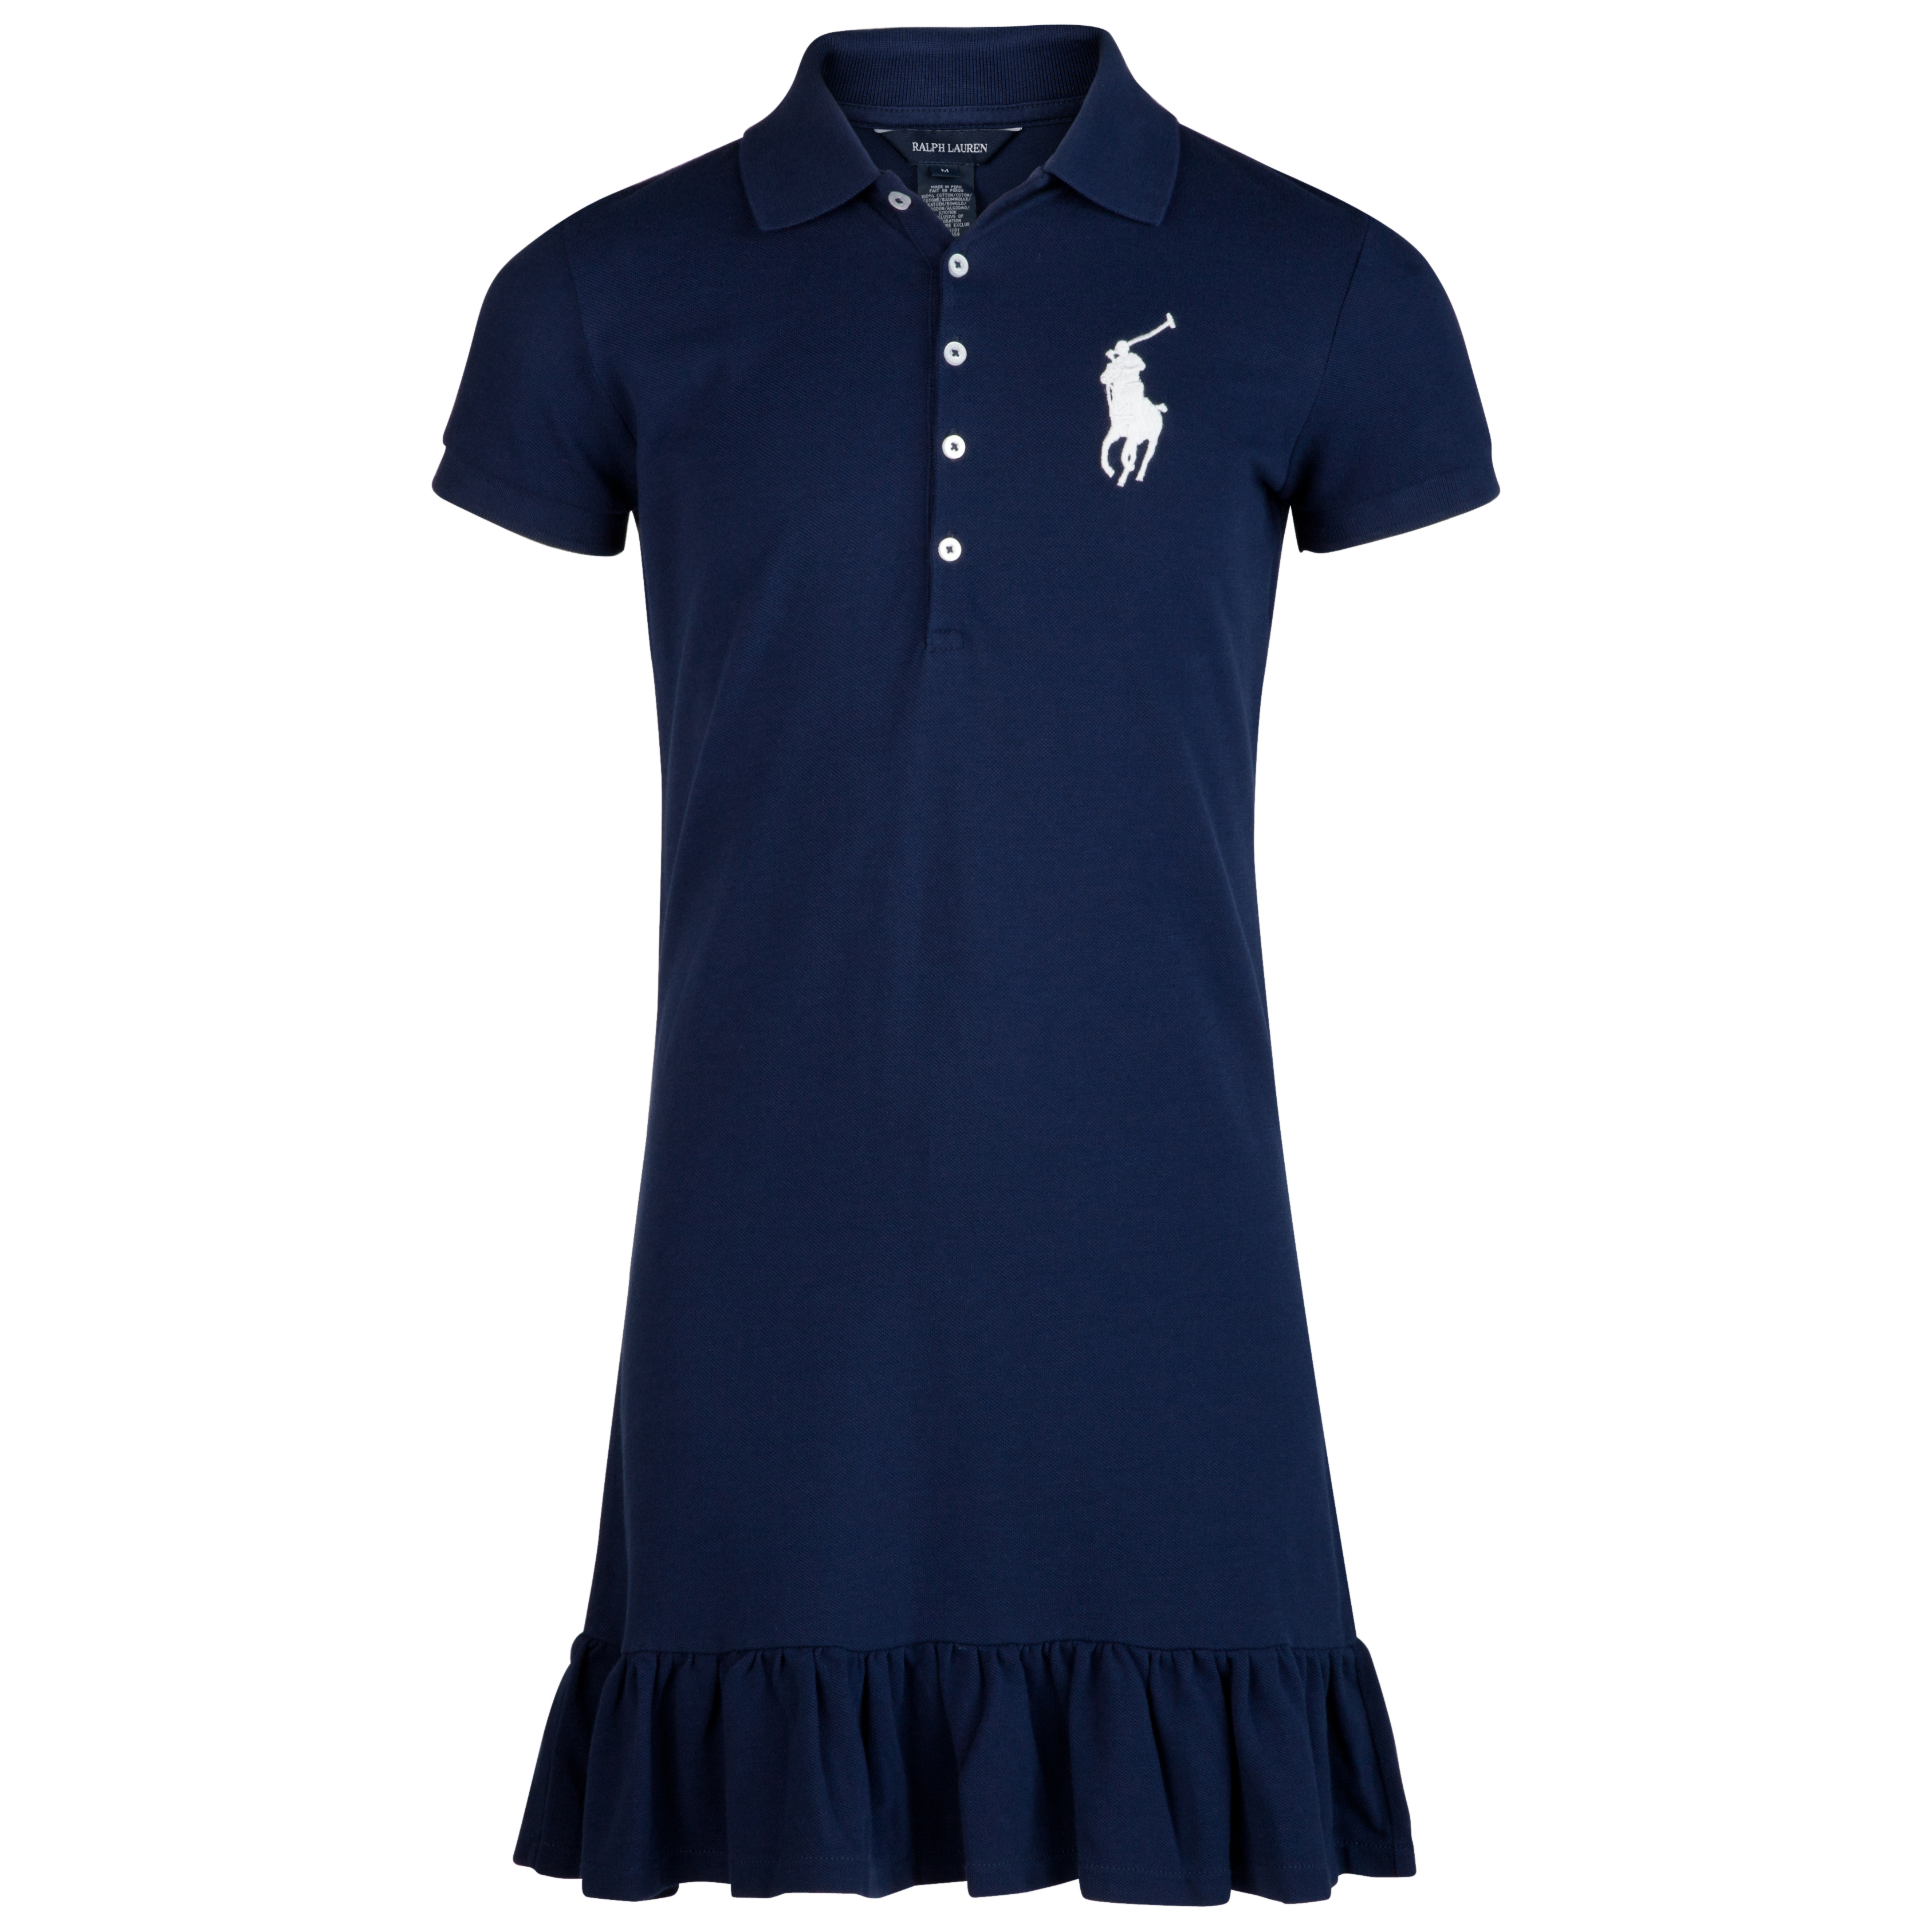 Polo Ralph Lauren Wimbledon Polo Dress Mesh - French Navy - Infant Girls